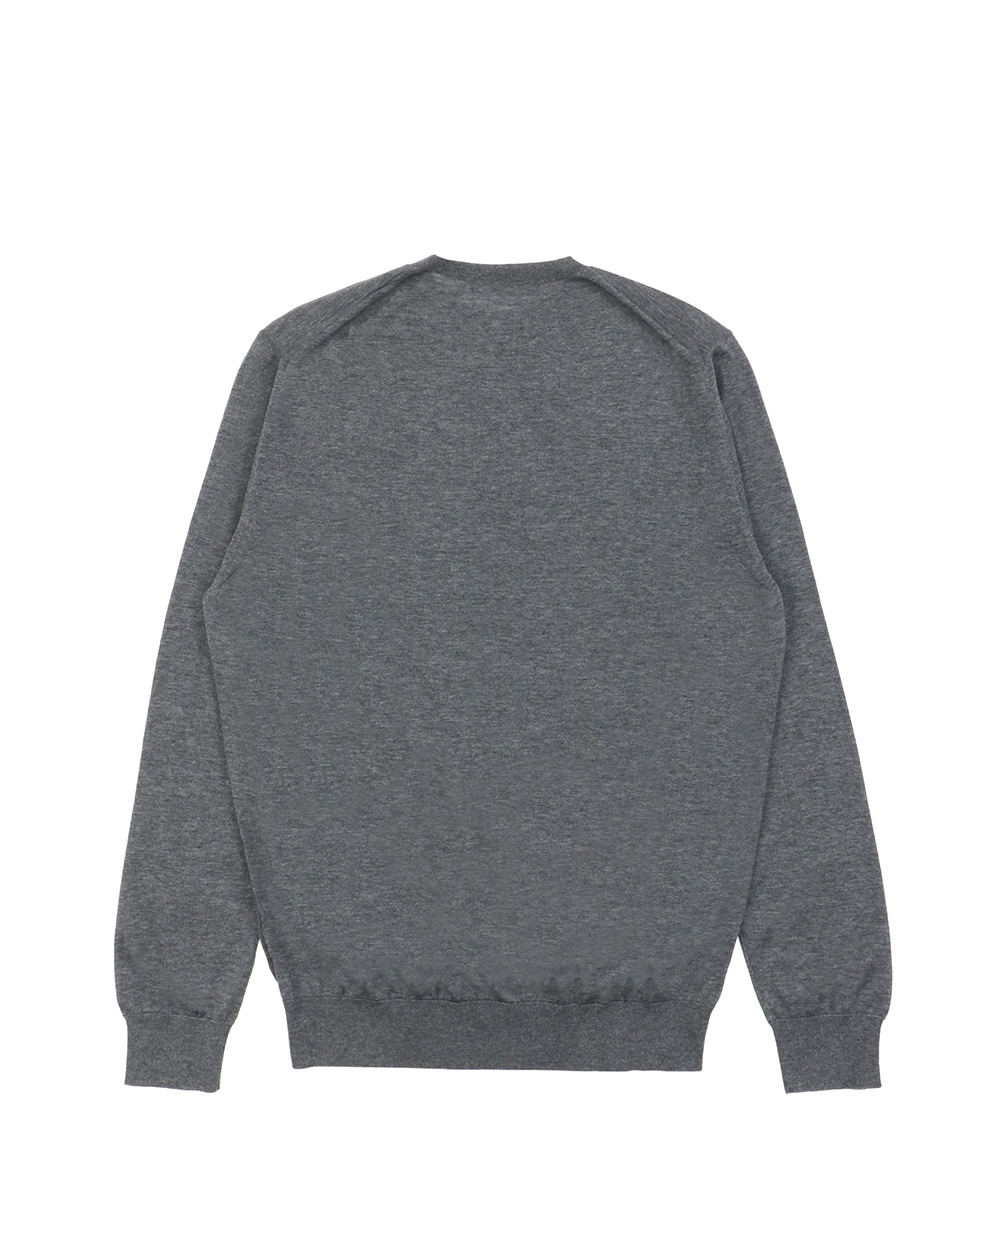 Cotton Long Sleeves Crew Neck Sweatshirt 1